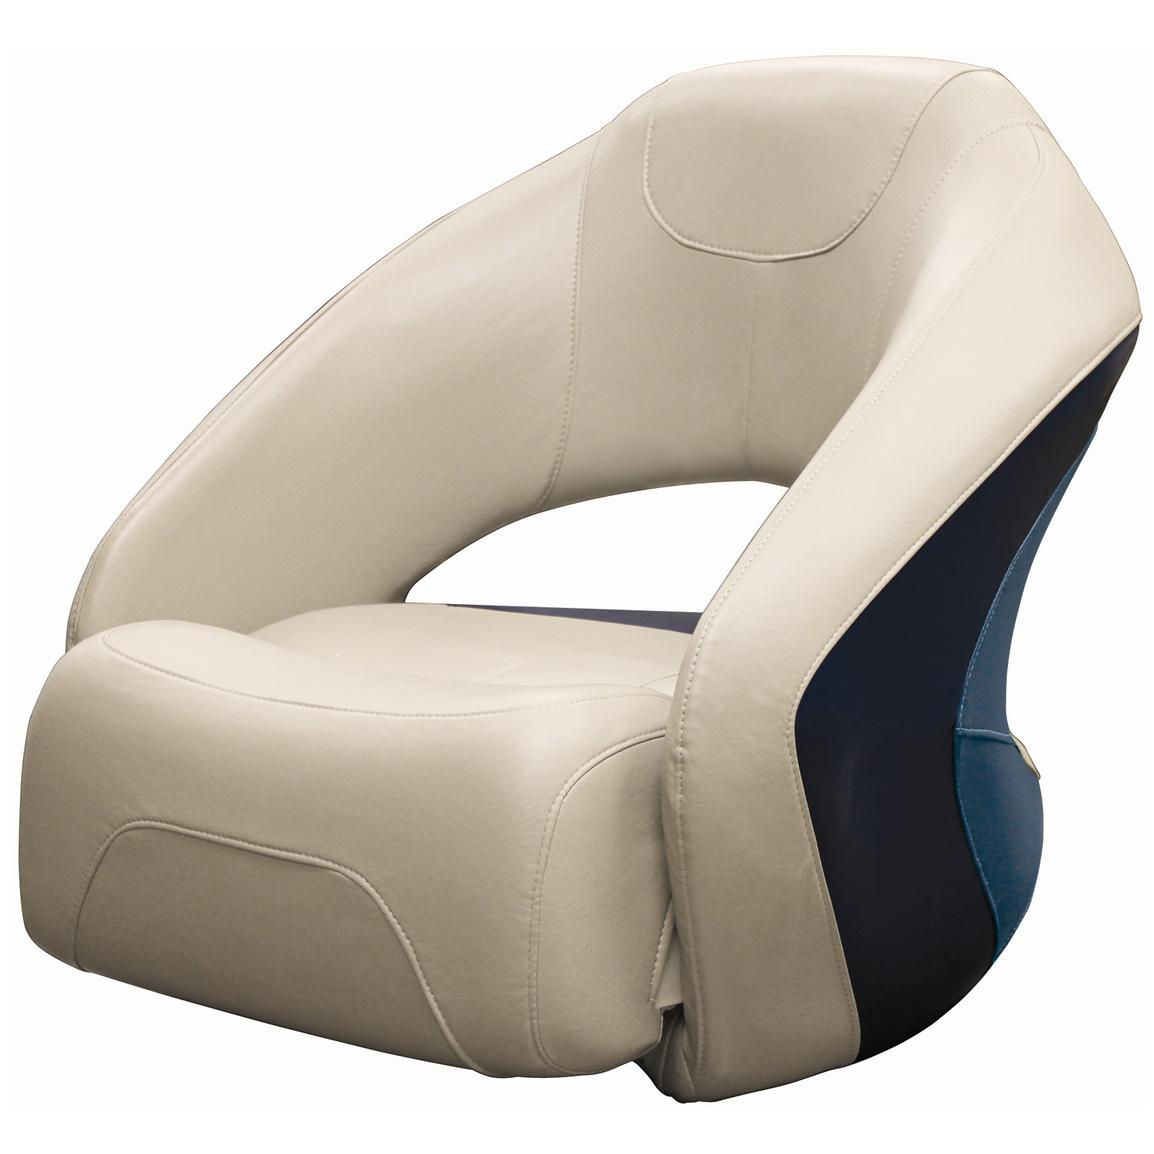 Wise® Premier Pontoon Bucket Seat with Flip-up Bolster, Color A - Platinum Punch / Navy / Cobalt